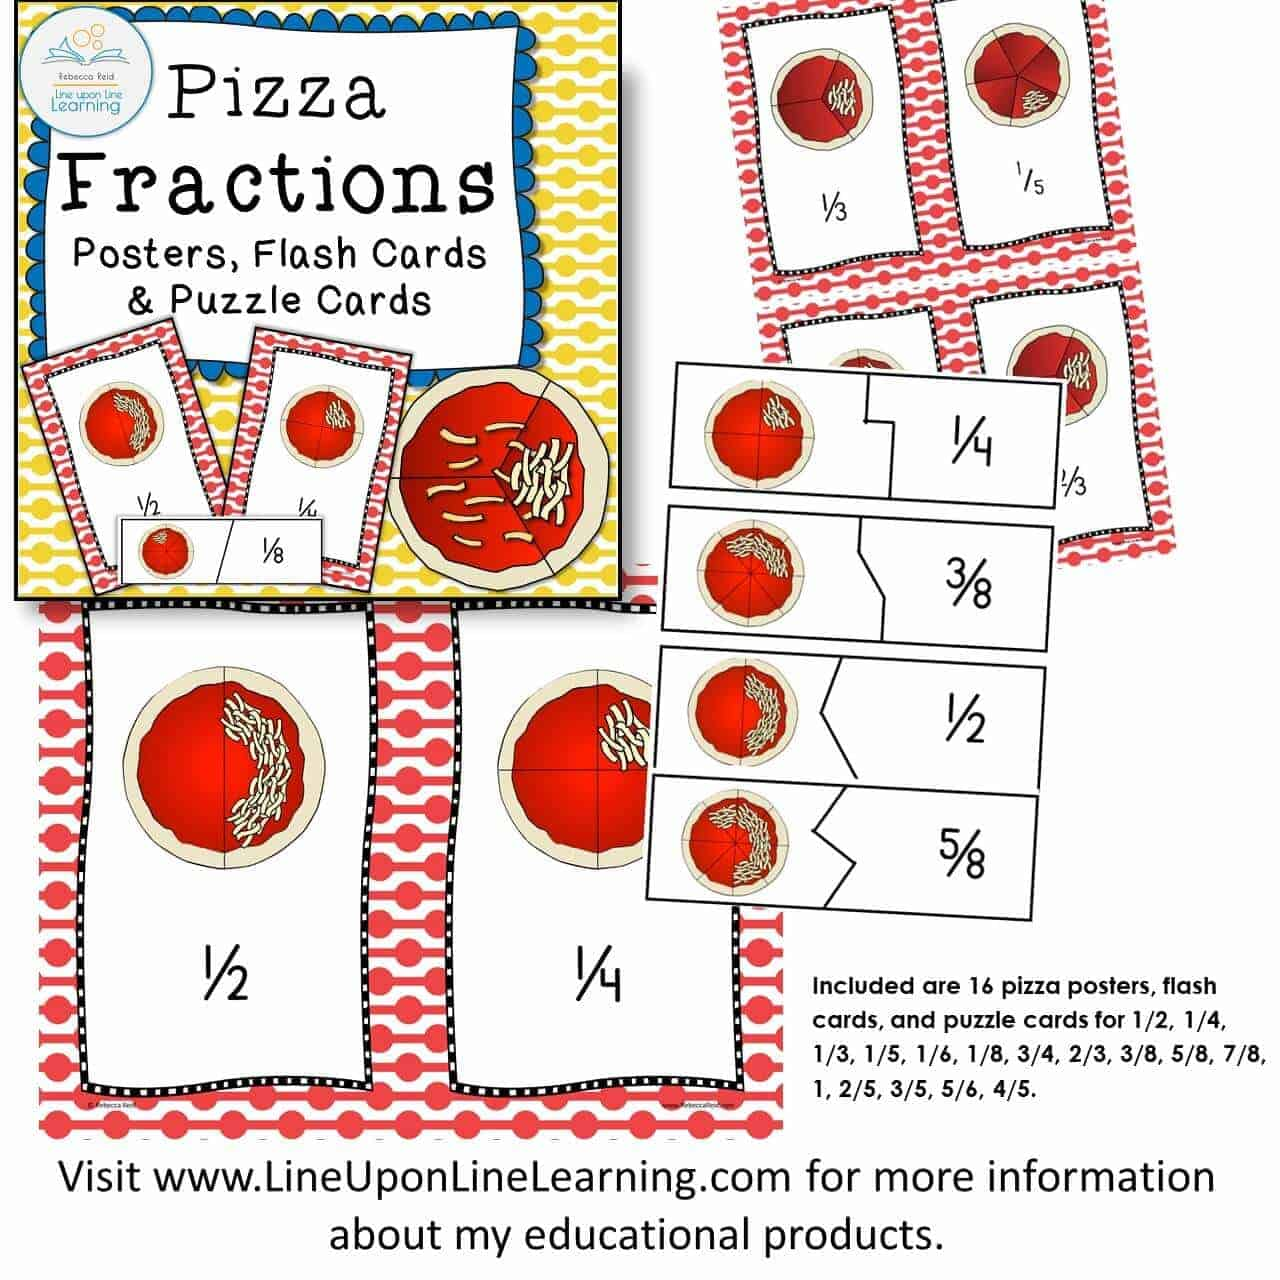 Pizza Fraction Posters Flashcards And Puzzle Cards